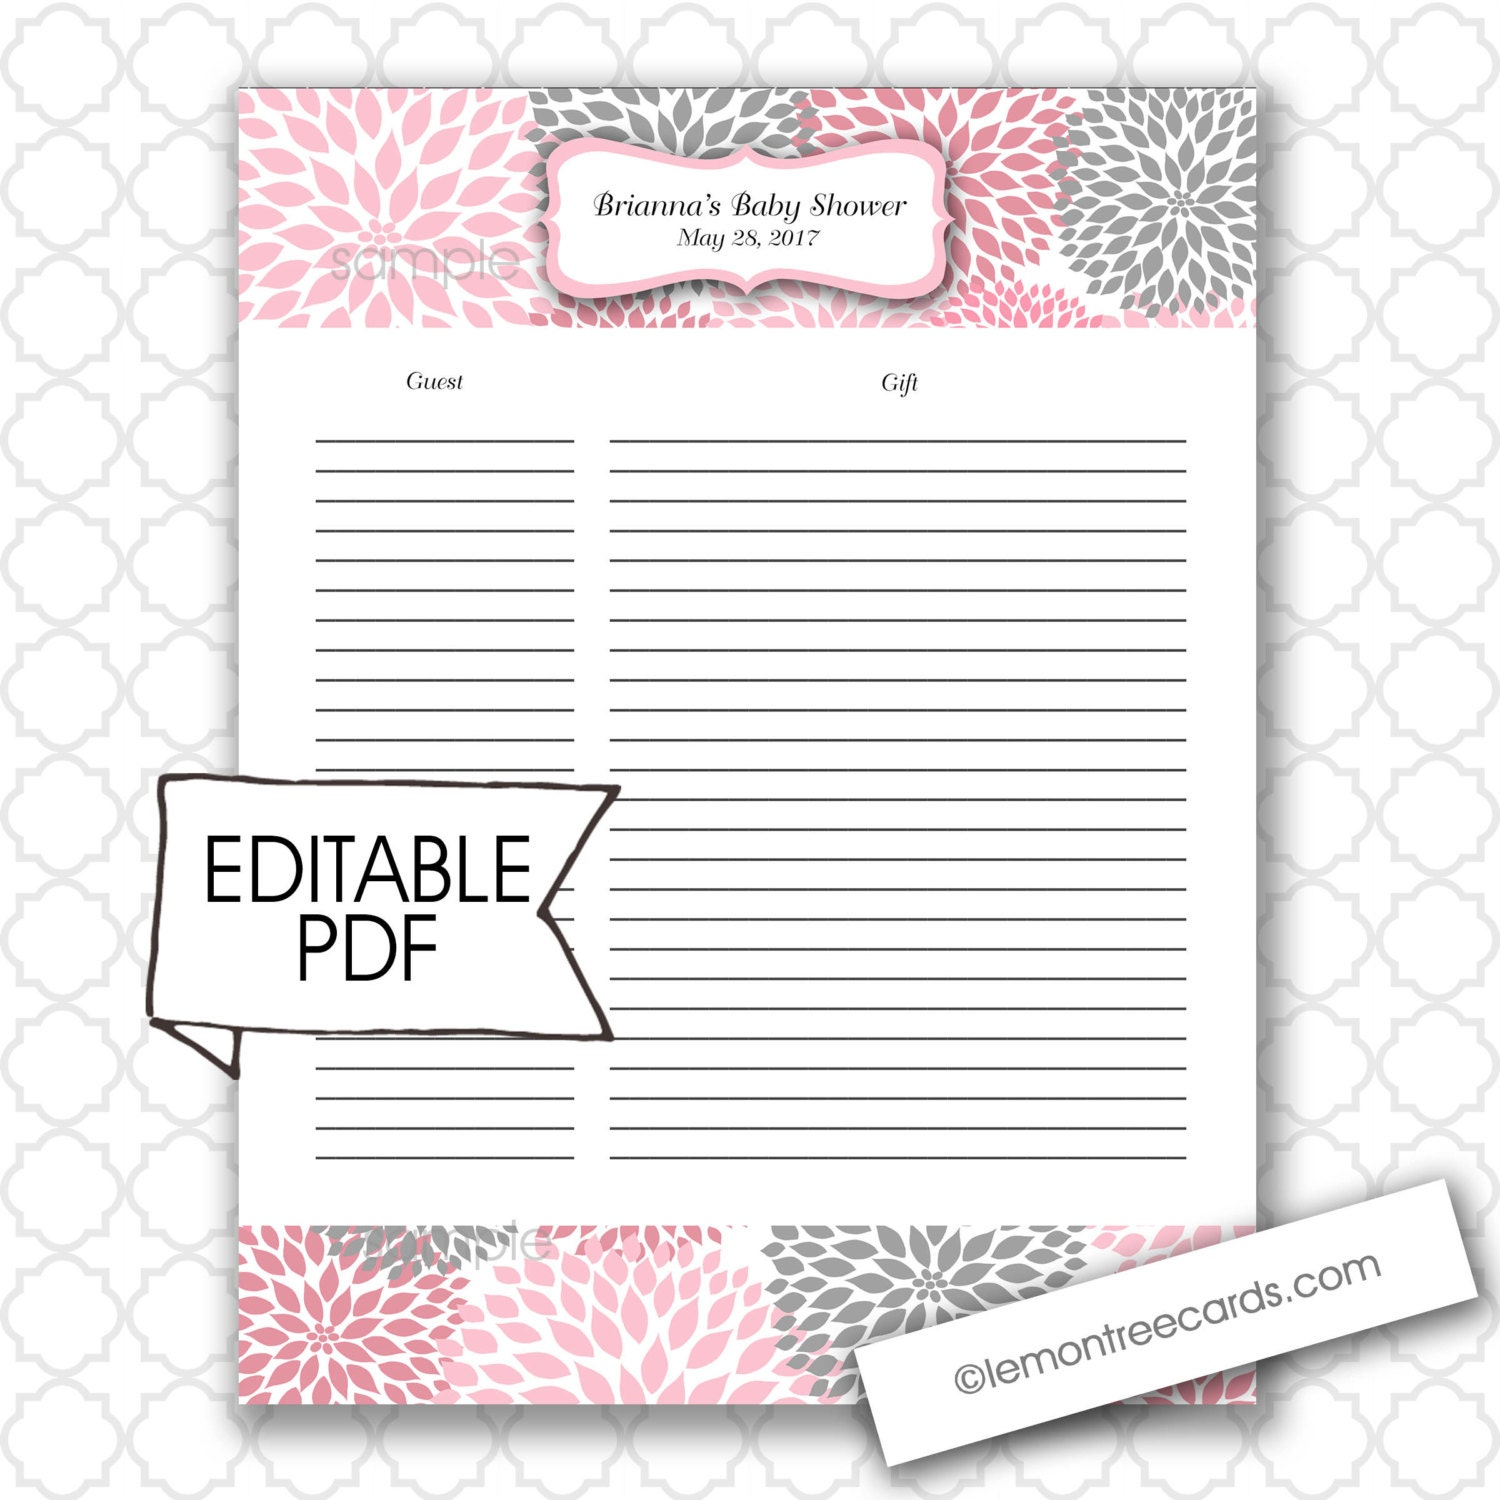 wedding shower gift list template - editable baby shower gift list and guest list girl baby